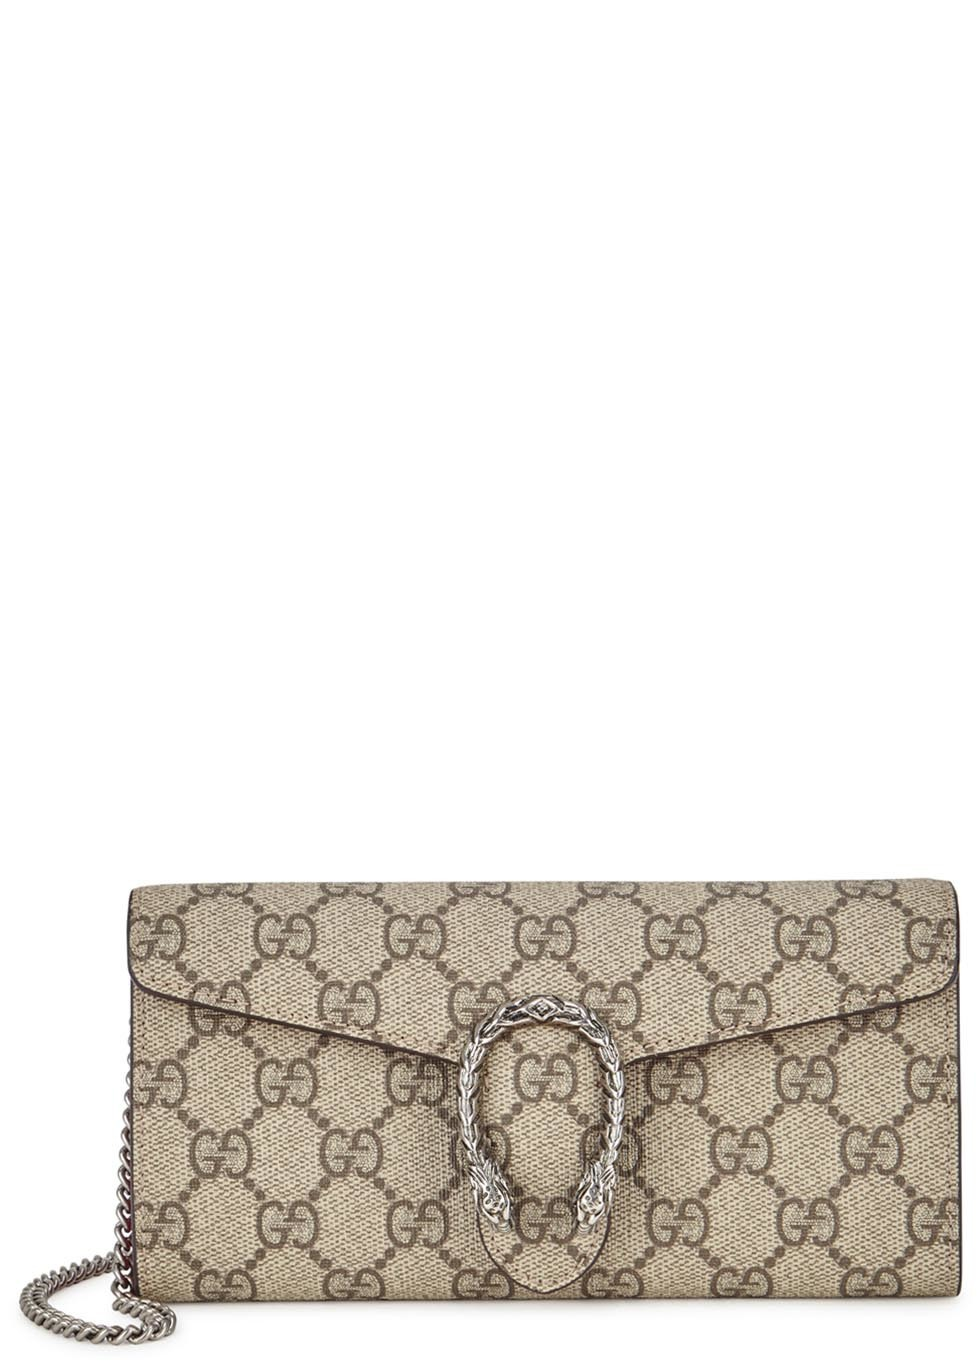 Dionysus Monogrammed Canvas Clutch - predominant colour: stone; secondary colour: silver; occasions: evening, occasion; type of pattern: standard; style: clutch; length: hand carry; size: standard; material: fabric; finish: plain; pattern: patterned/print; season: s/s 2016